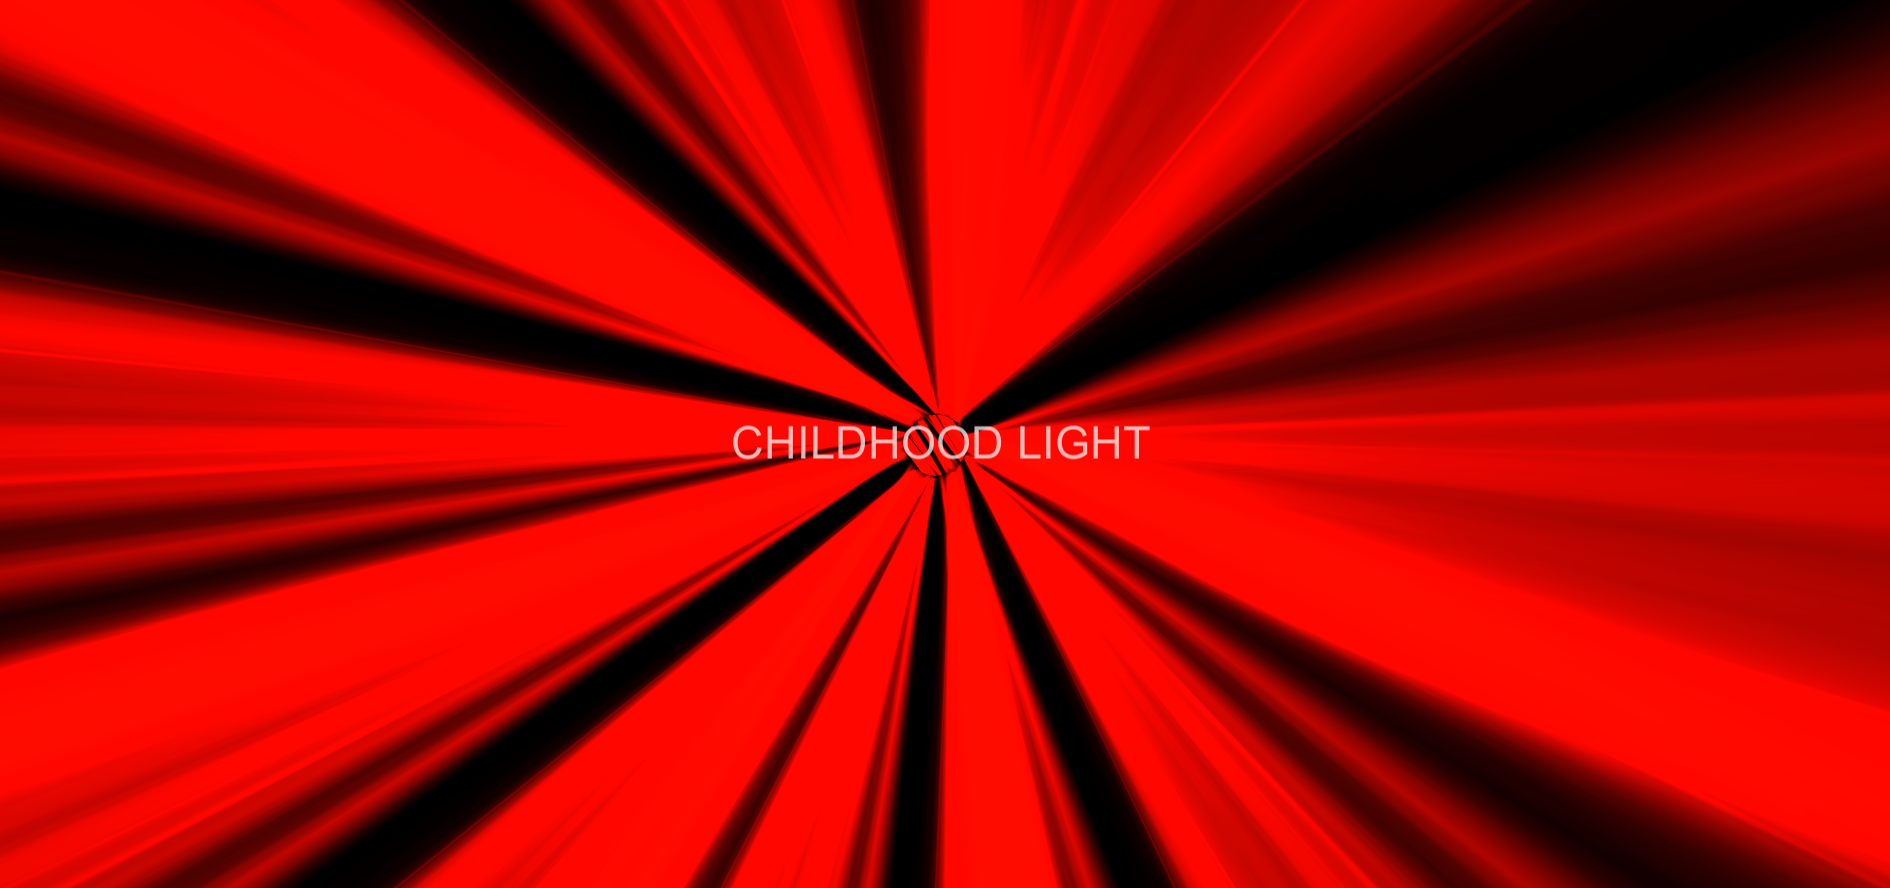 Childhood Light